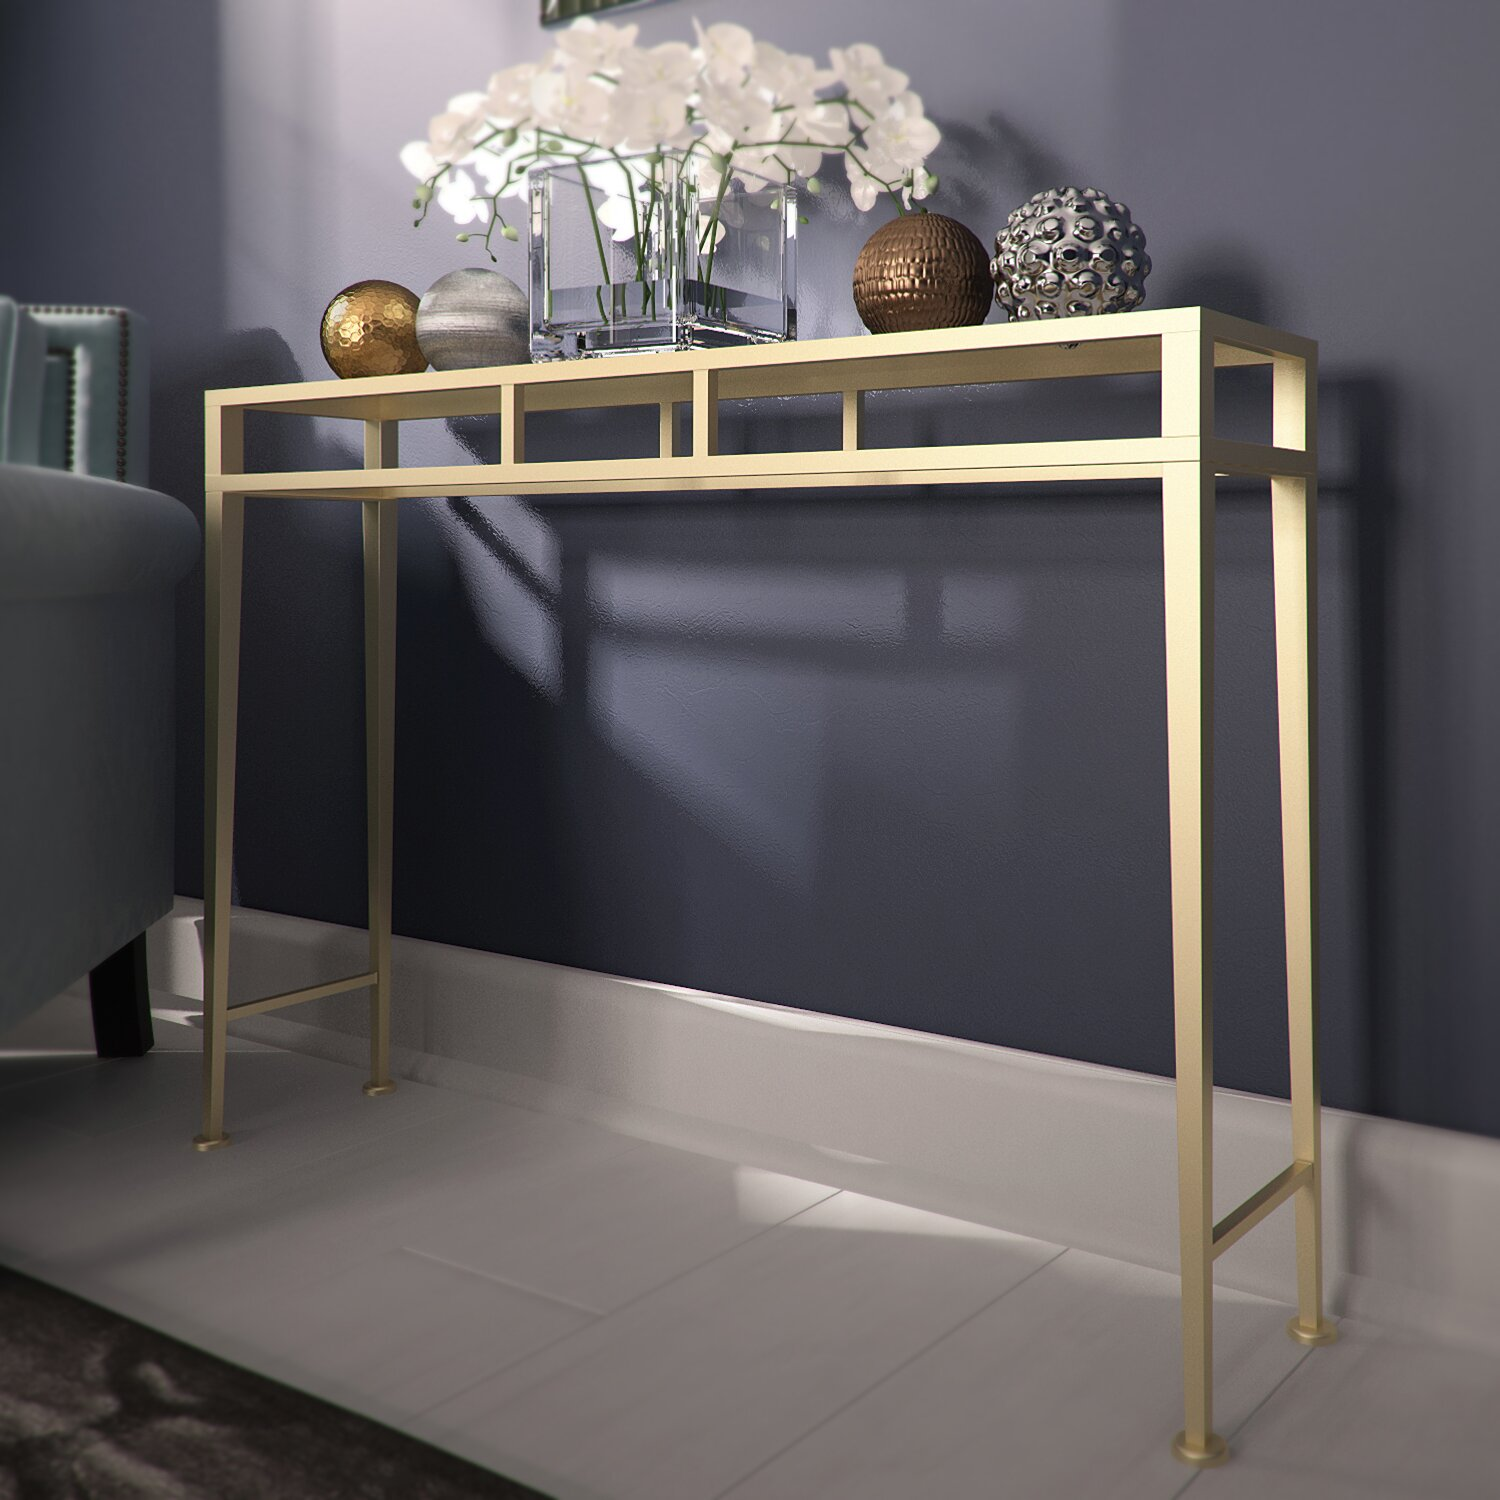 House of hampton console table reviews wayfair - Alluring mirrored console table for modern interior home furniture ...